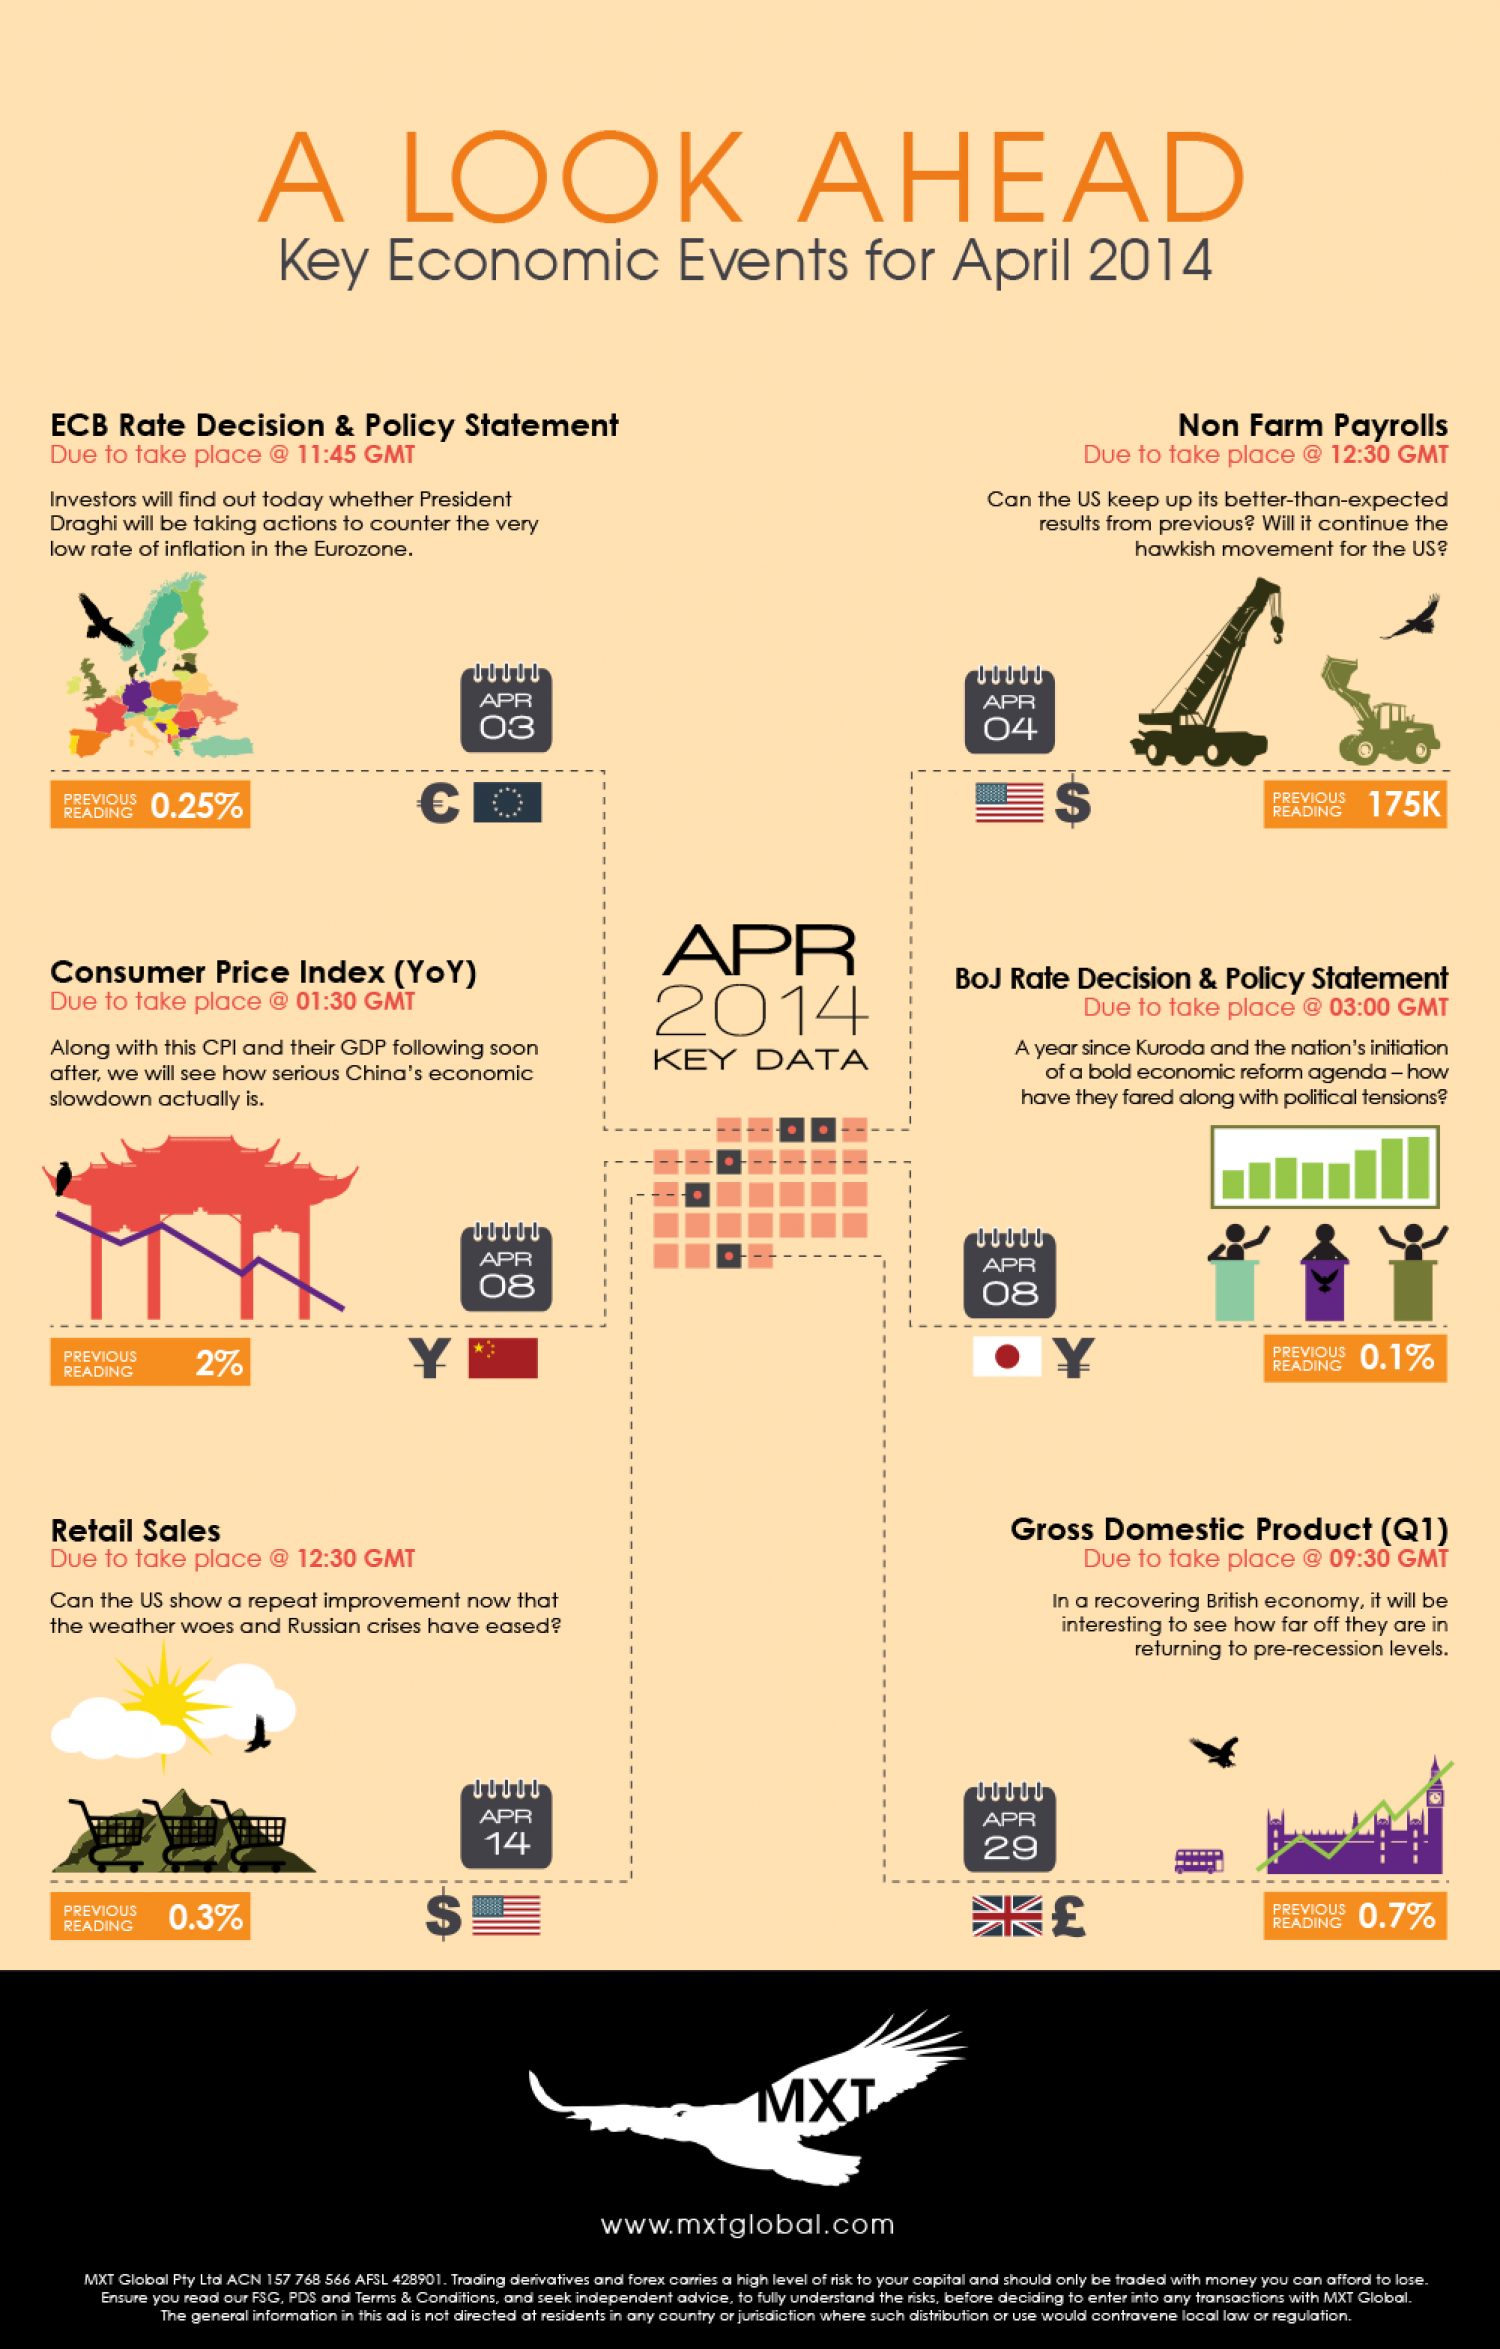 Key Economic Events April 2014 Infographic